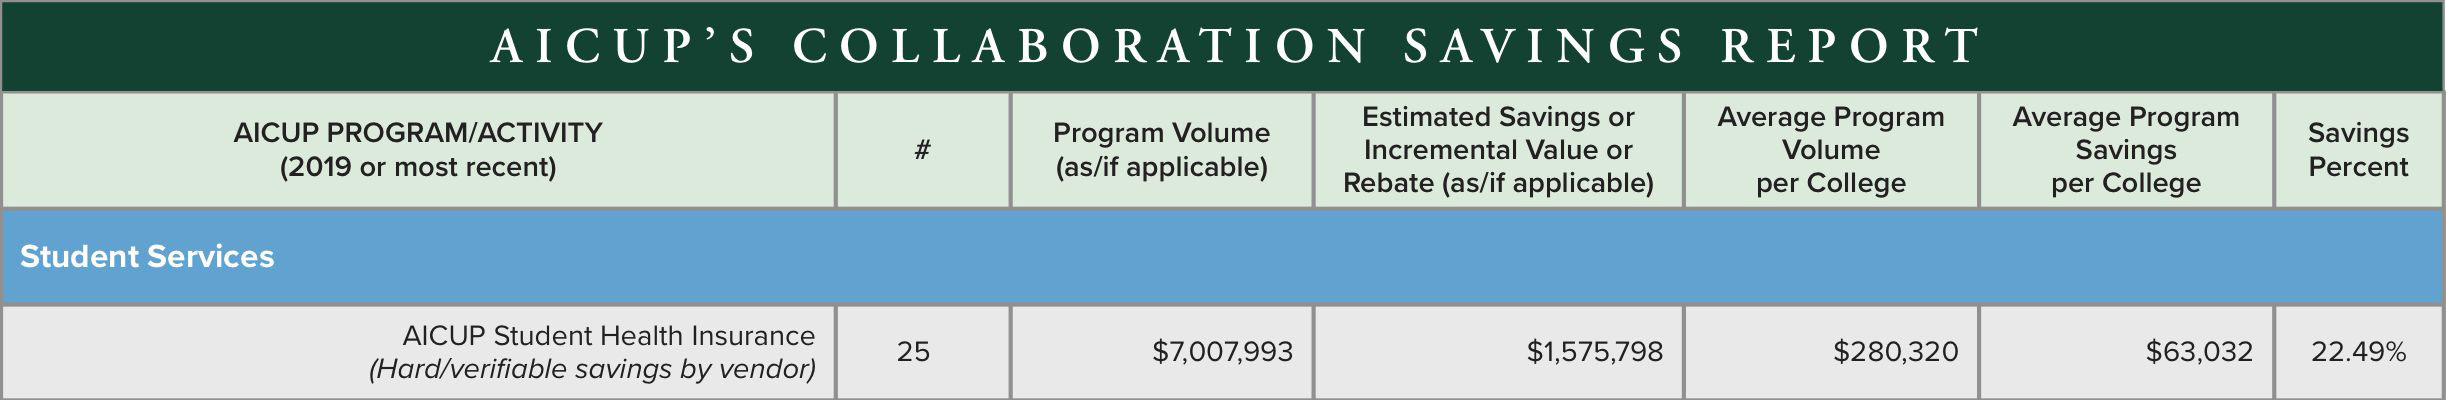 AICUPs Collaboration Savings Report Student Services